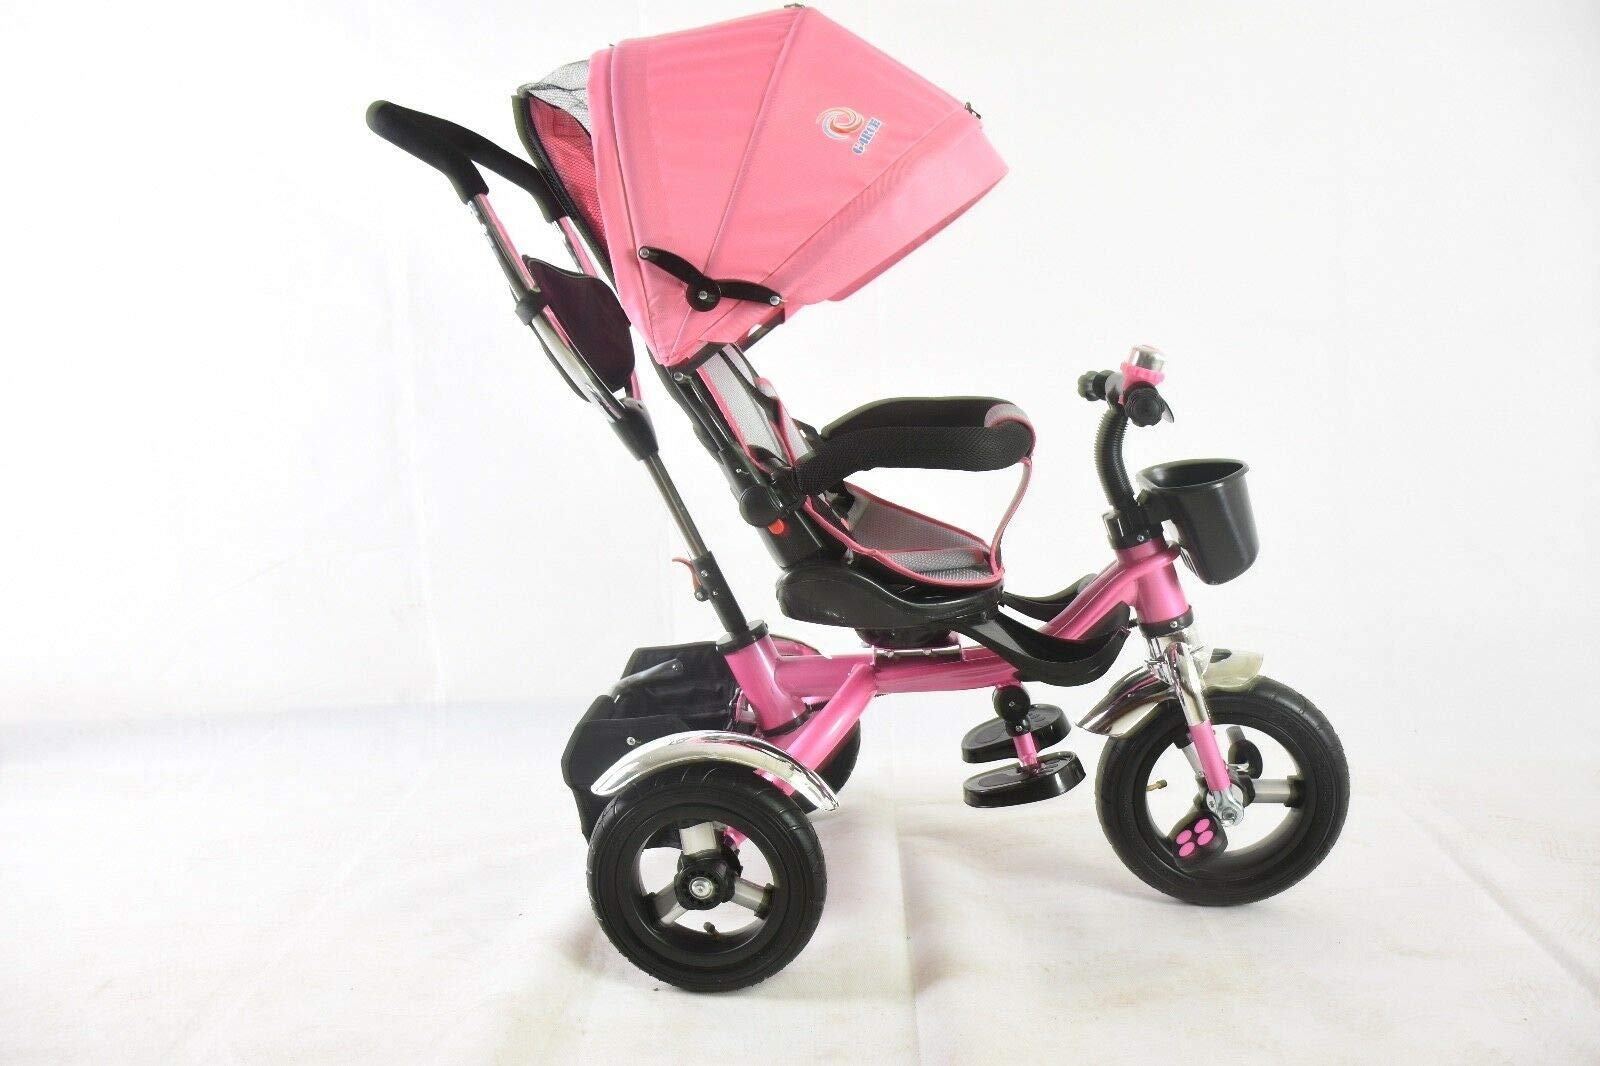 Trike Tricycle Stroller Buggy Wheel Ride Push Rain Cover Rubber Tyres 4 in 1 System (Pink) Generic Removable Leg rest for kids to feet up. Adjustable and removable parent handle or control bar. Plastic seat with removable padded cushion and lap seat belt to keep your child safe. 4